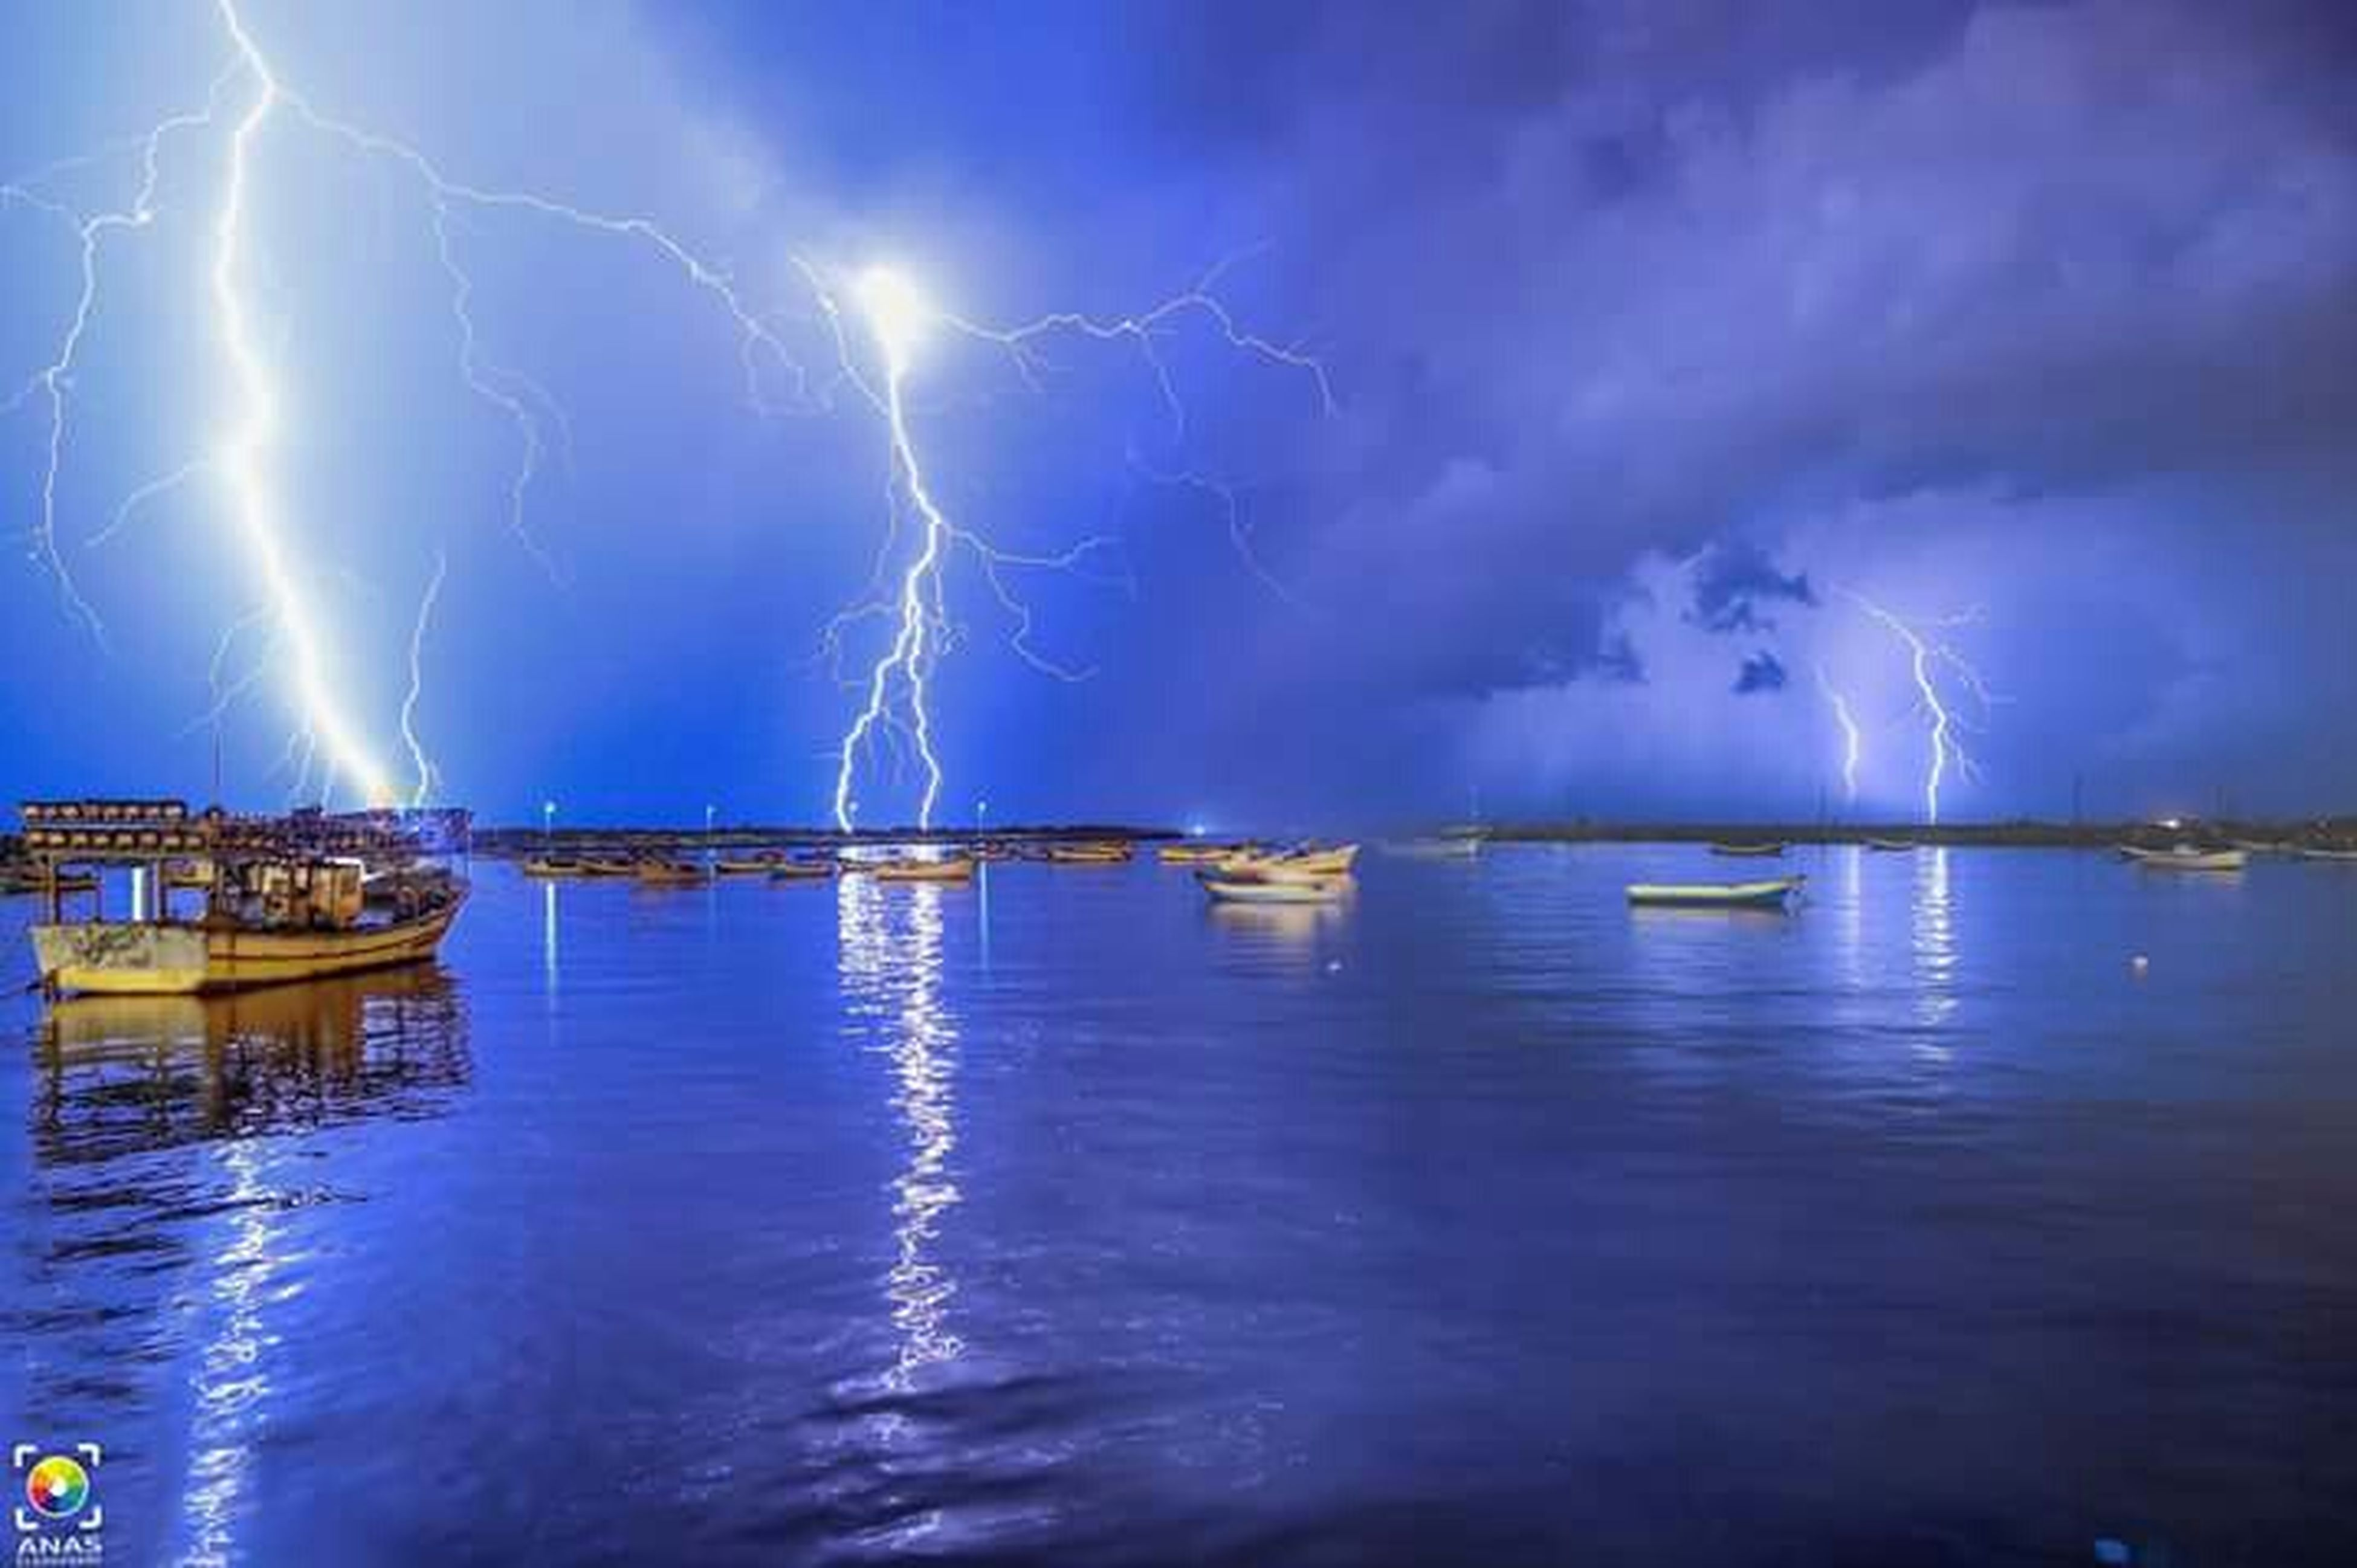 water, sky, nautical vessel, sea, cloud - sky, transportation, boat, mode of transport, waterfront, scenics, reflection, cloudy, beauty in nature, tranquility, illuminated, blue, tranquil scene, nature, moored, night